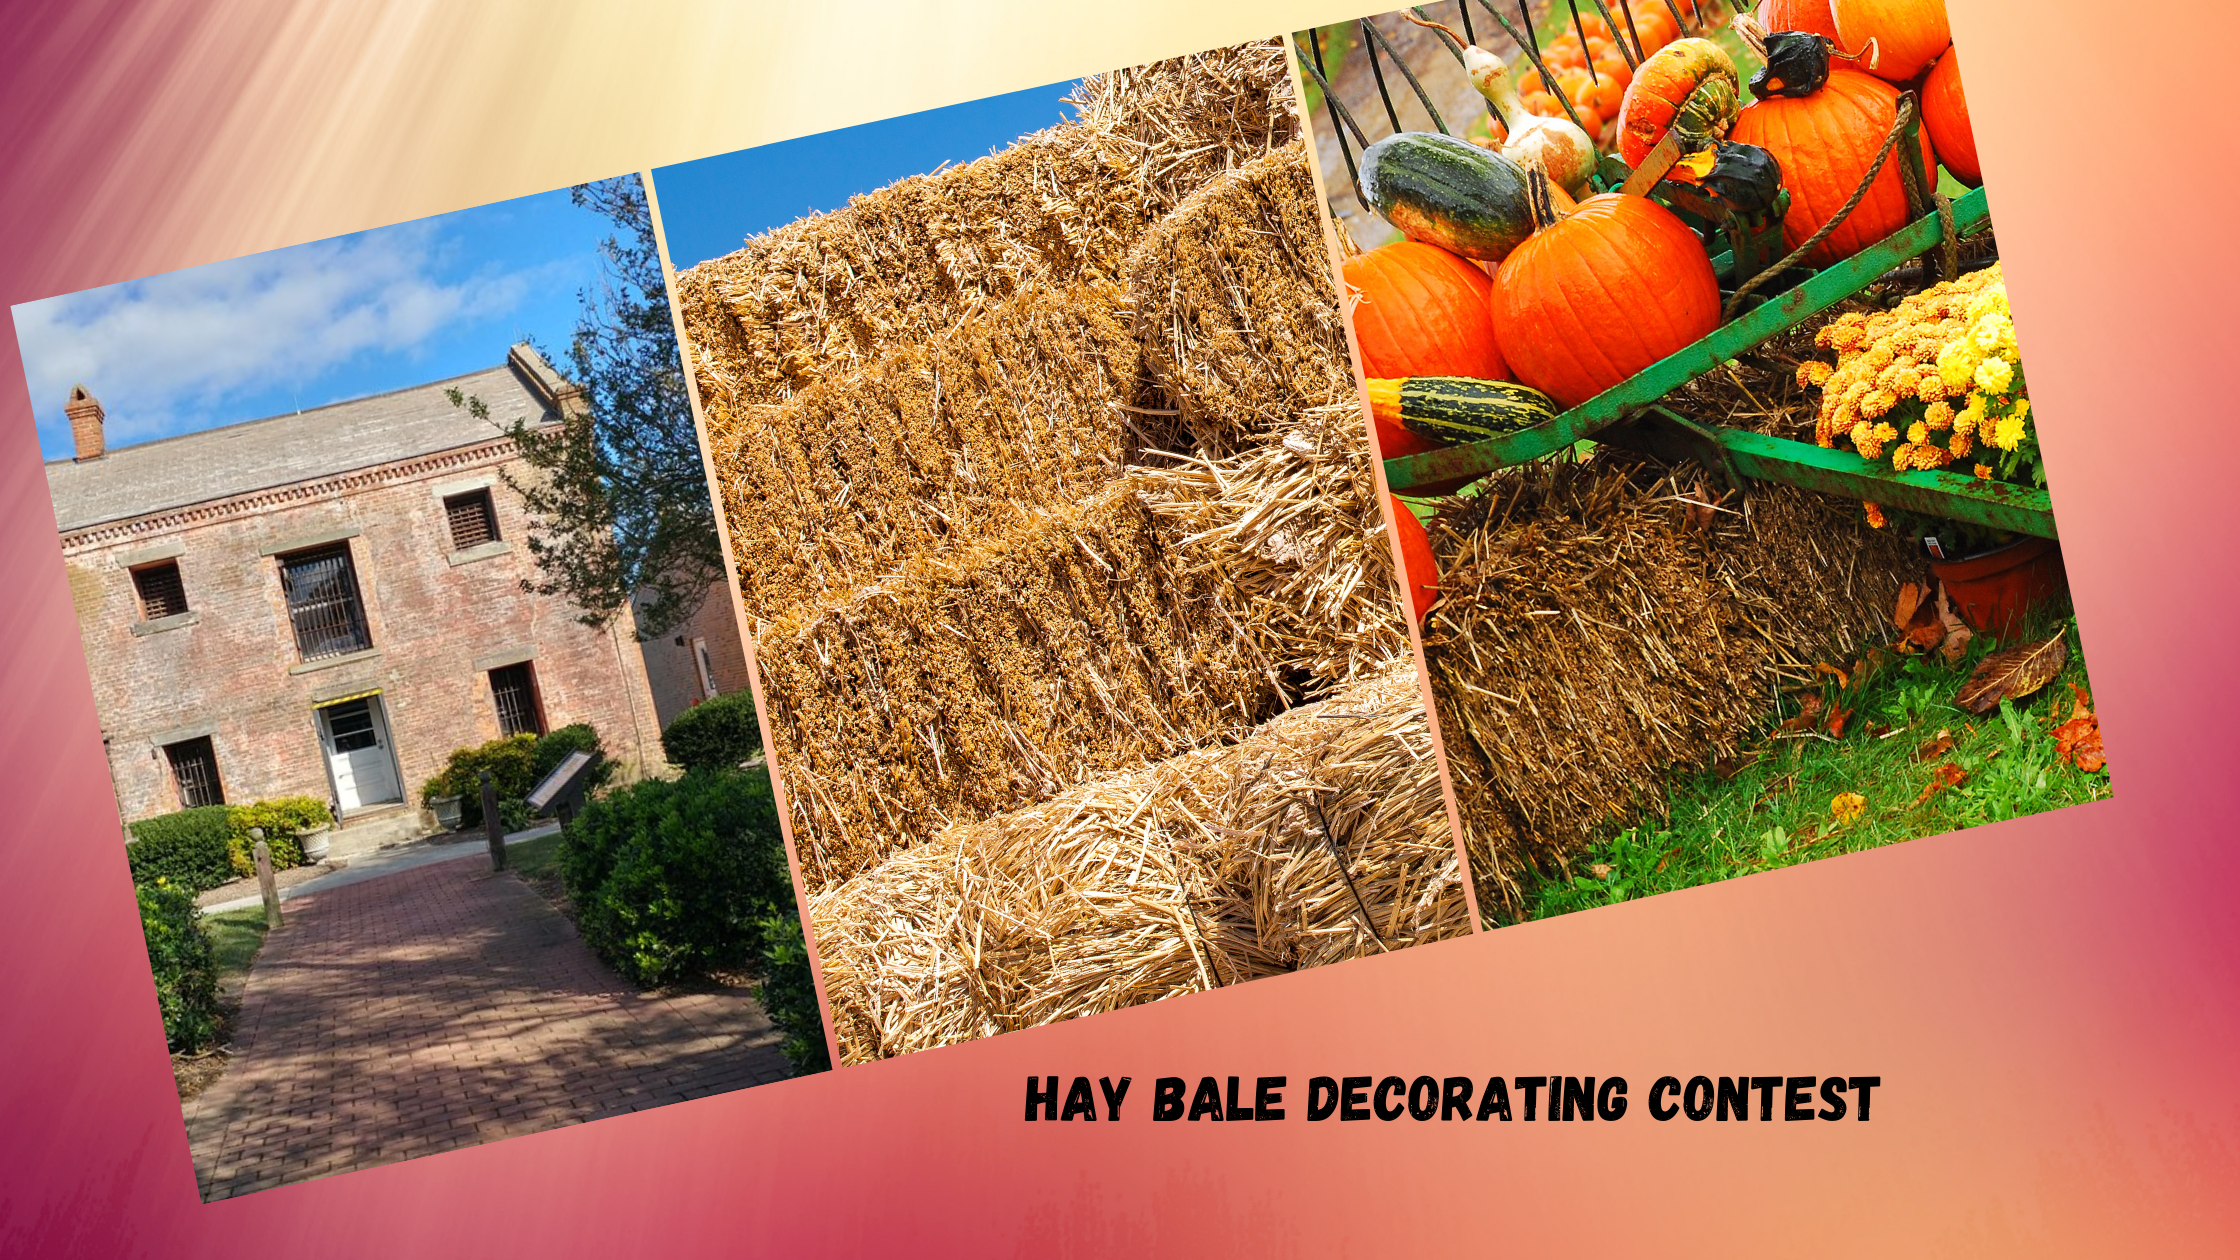 hay bale decorating contest